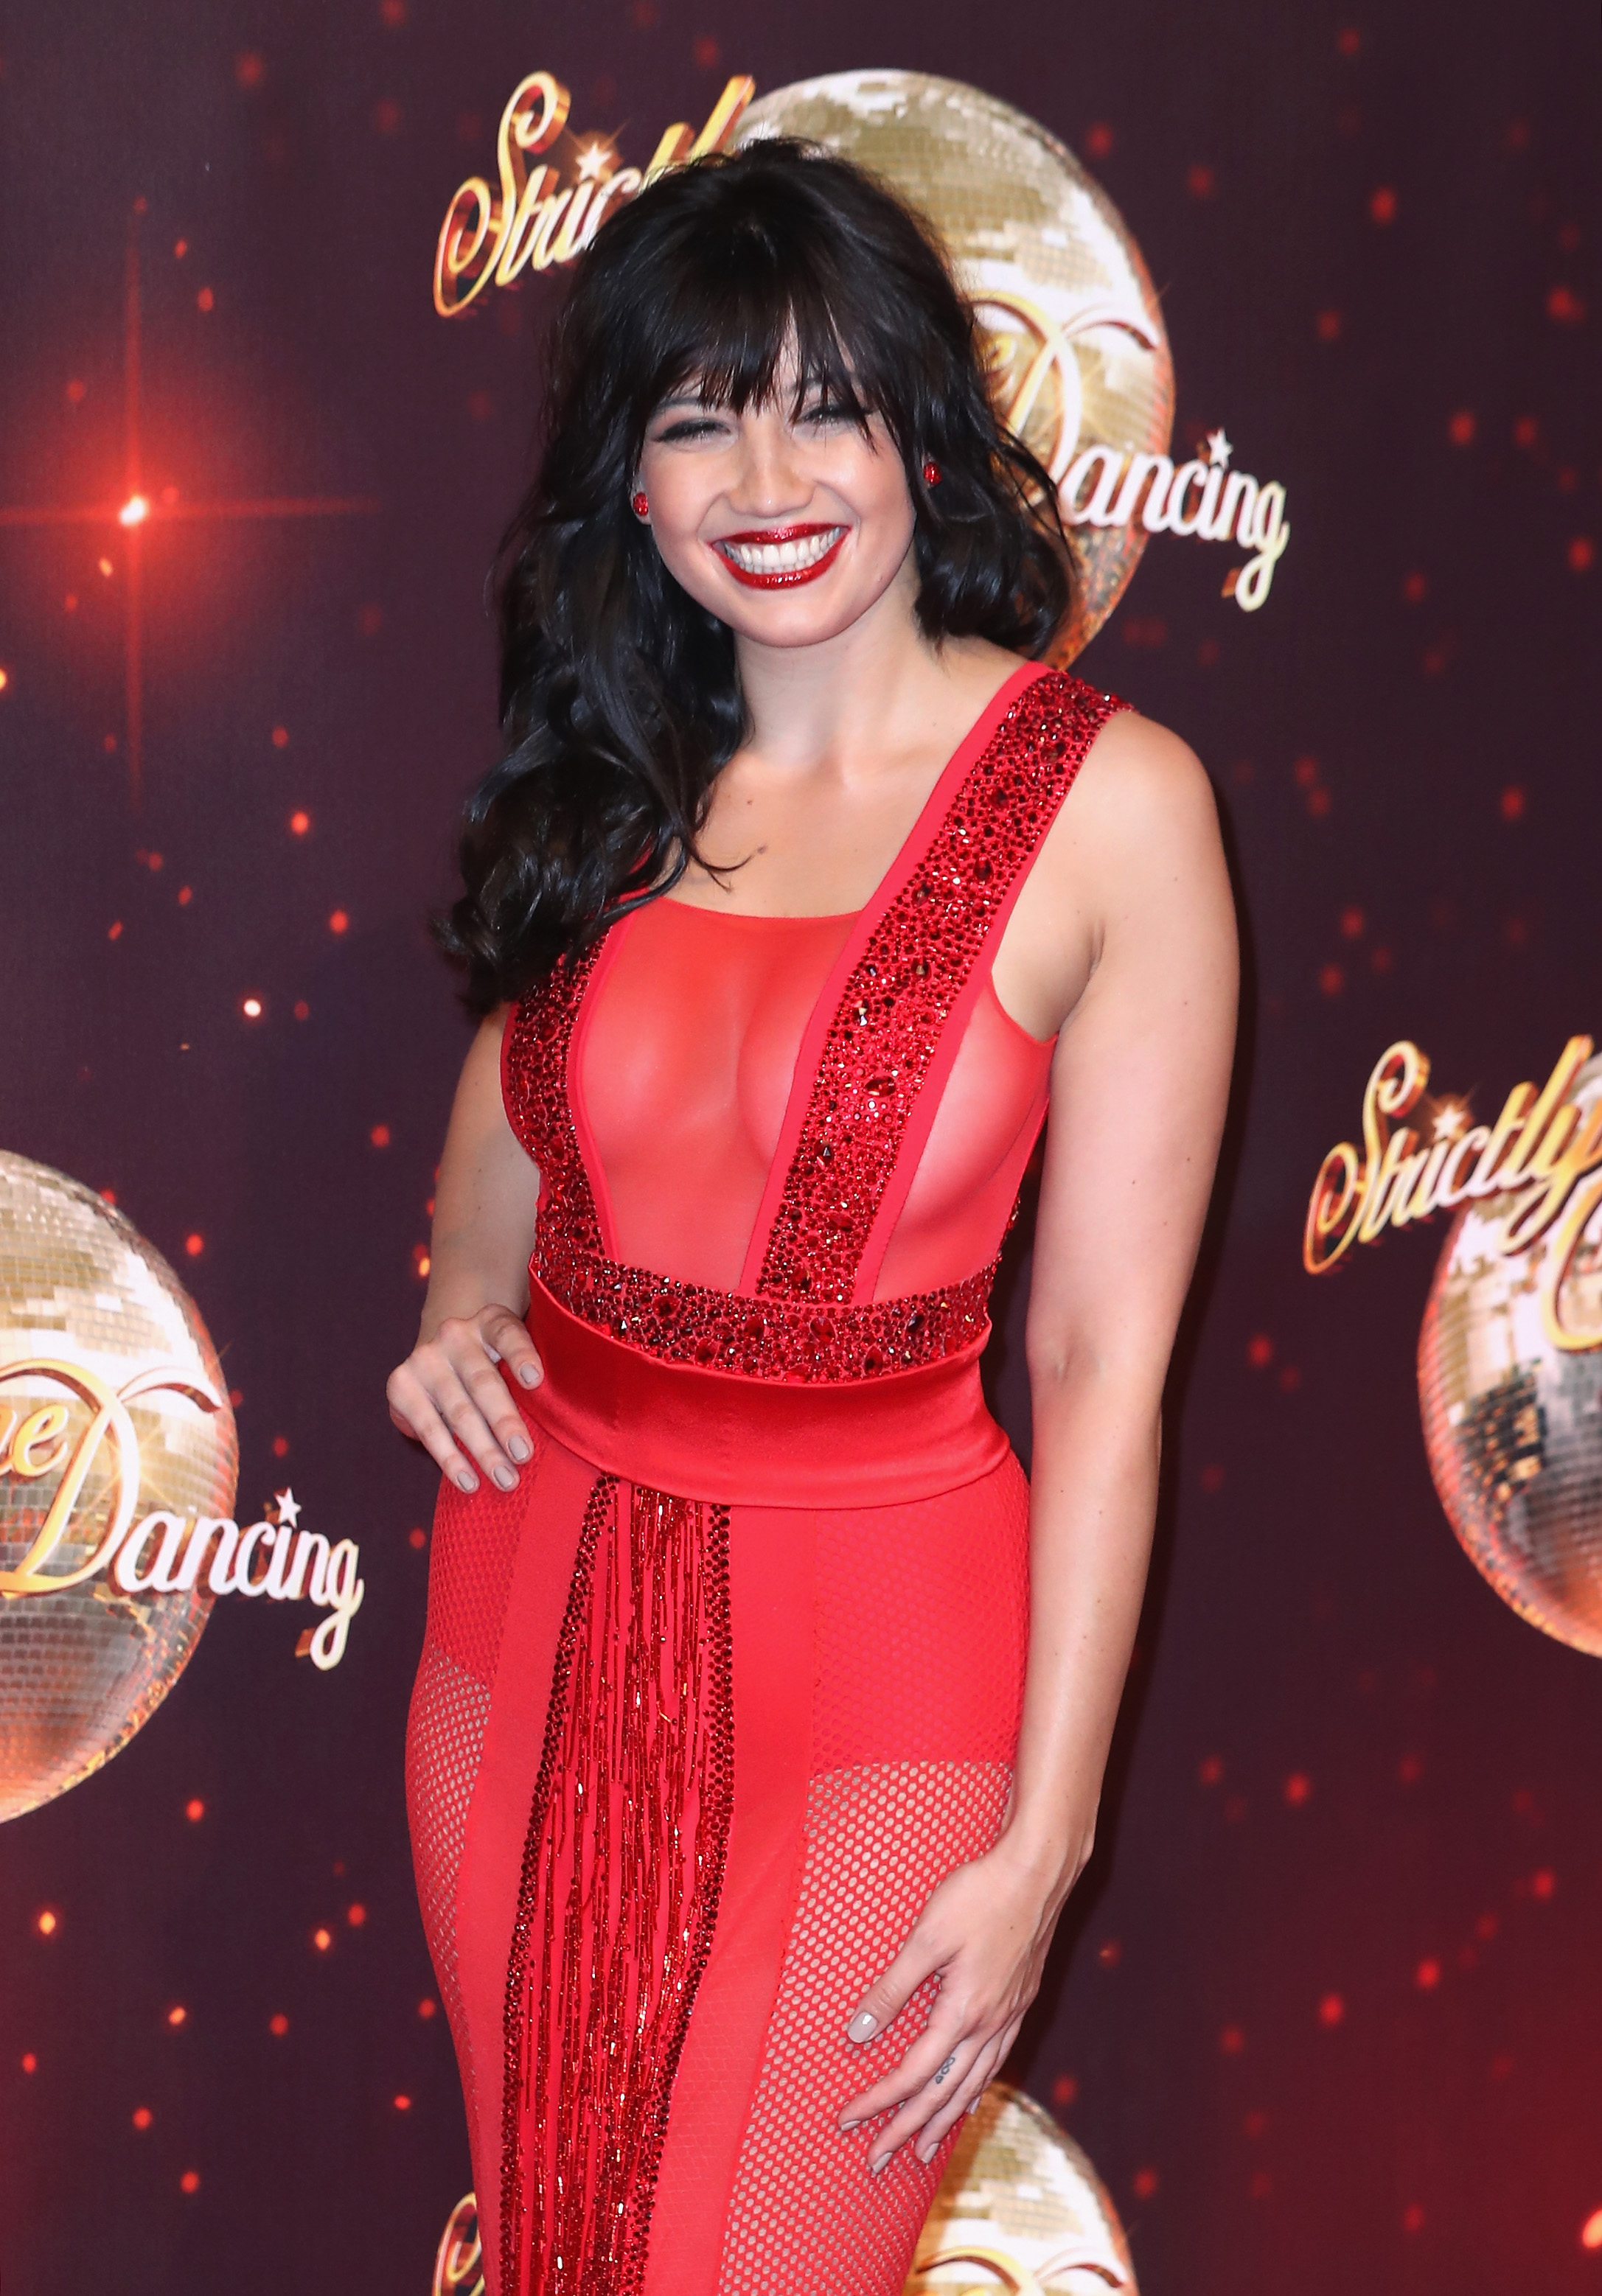 Daisy Lowe Reveals Shed Be Up For A Threesome With Fellow Strictly Contestants daisy1